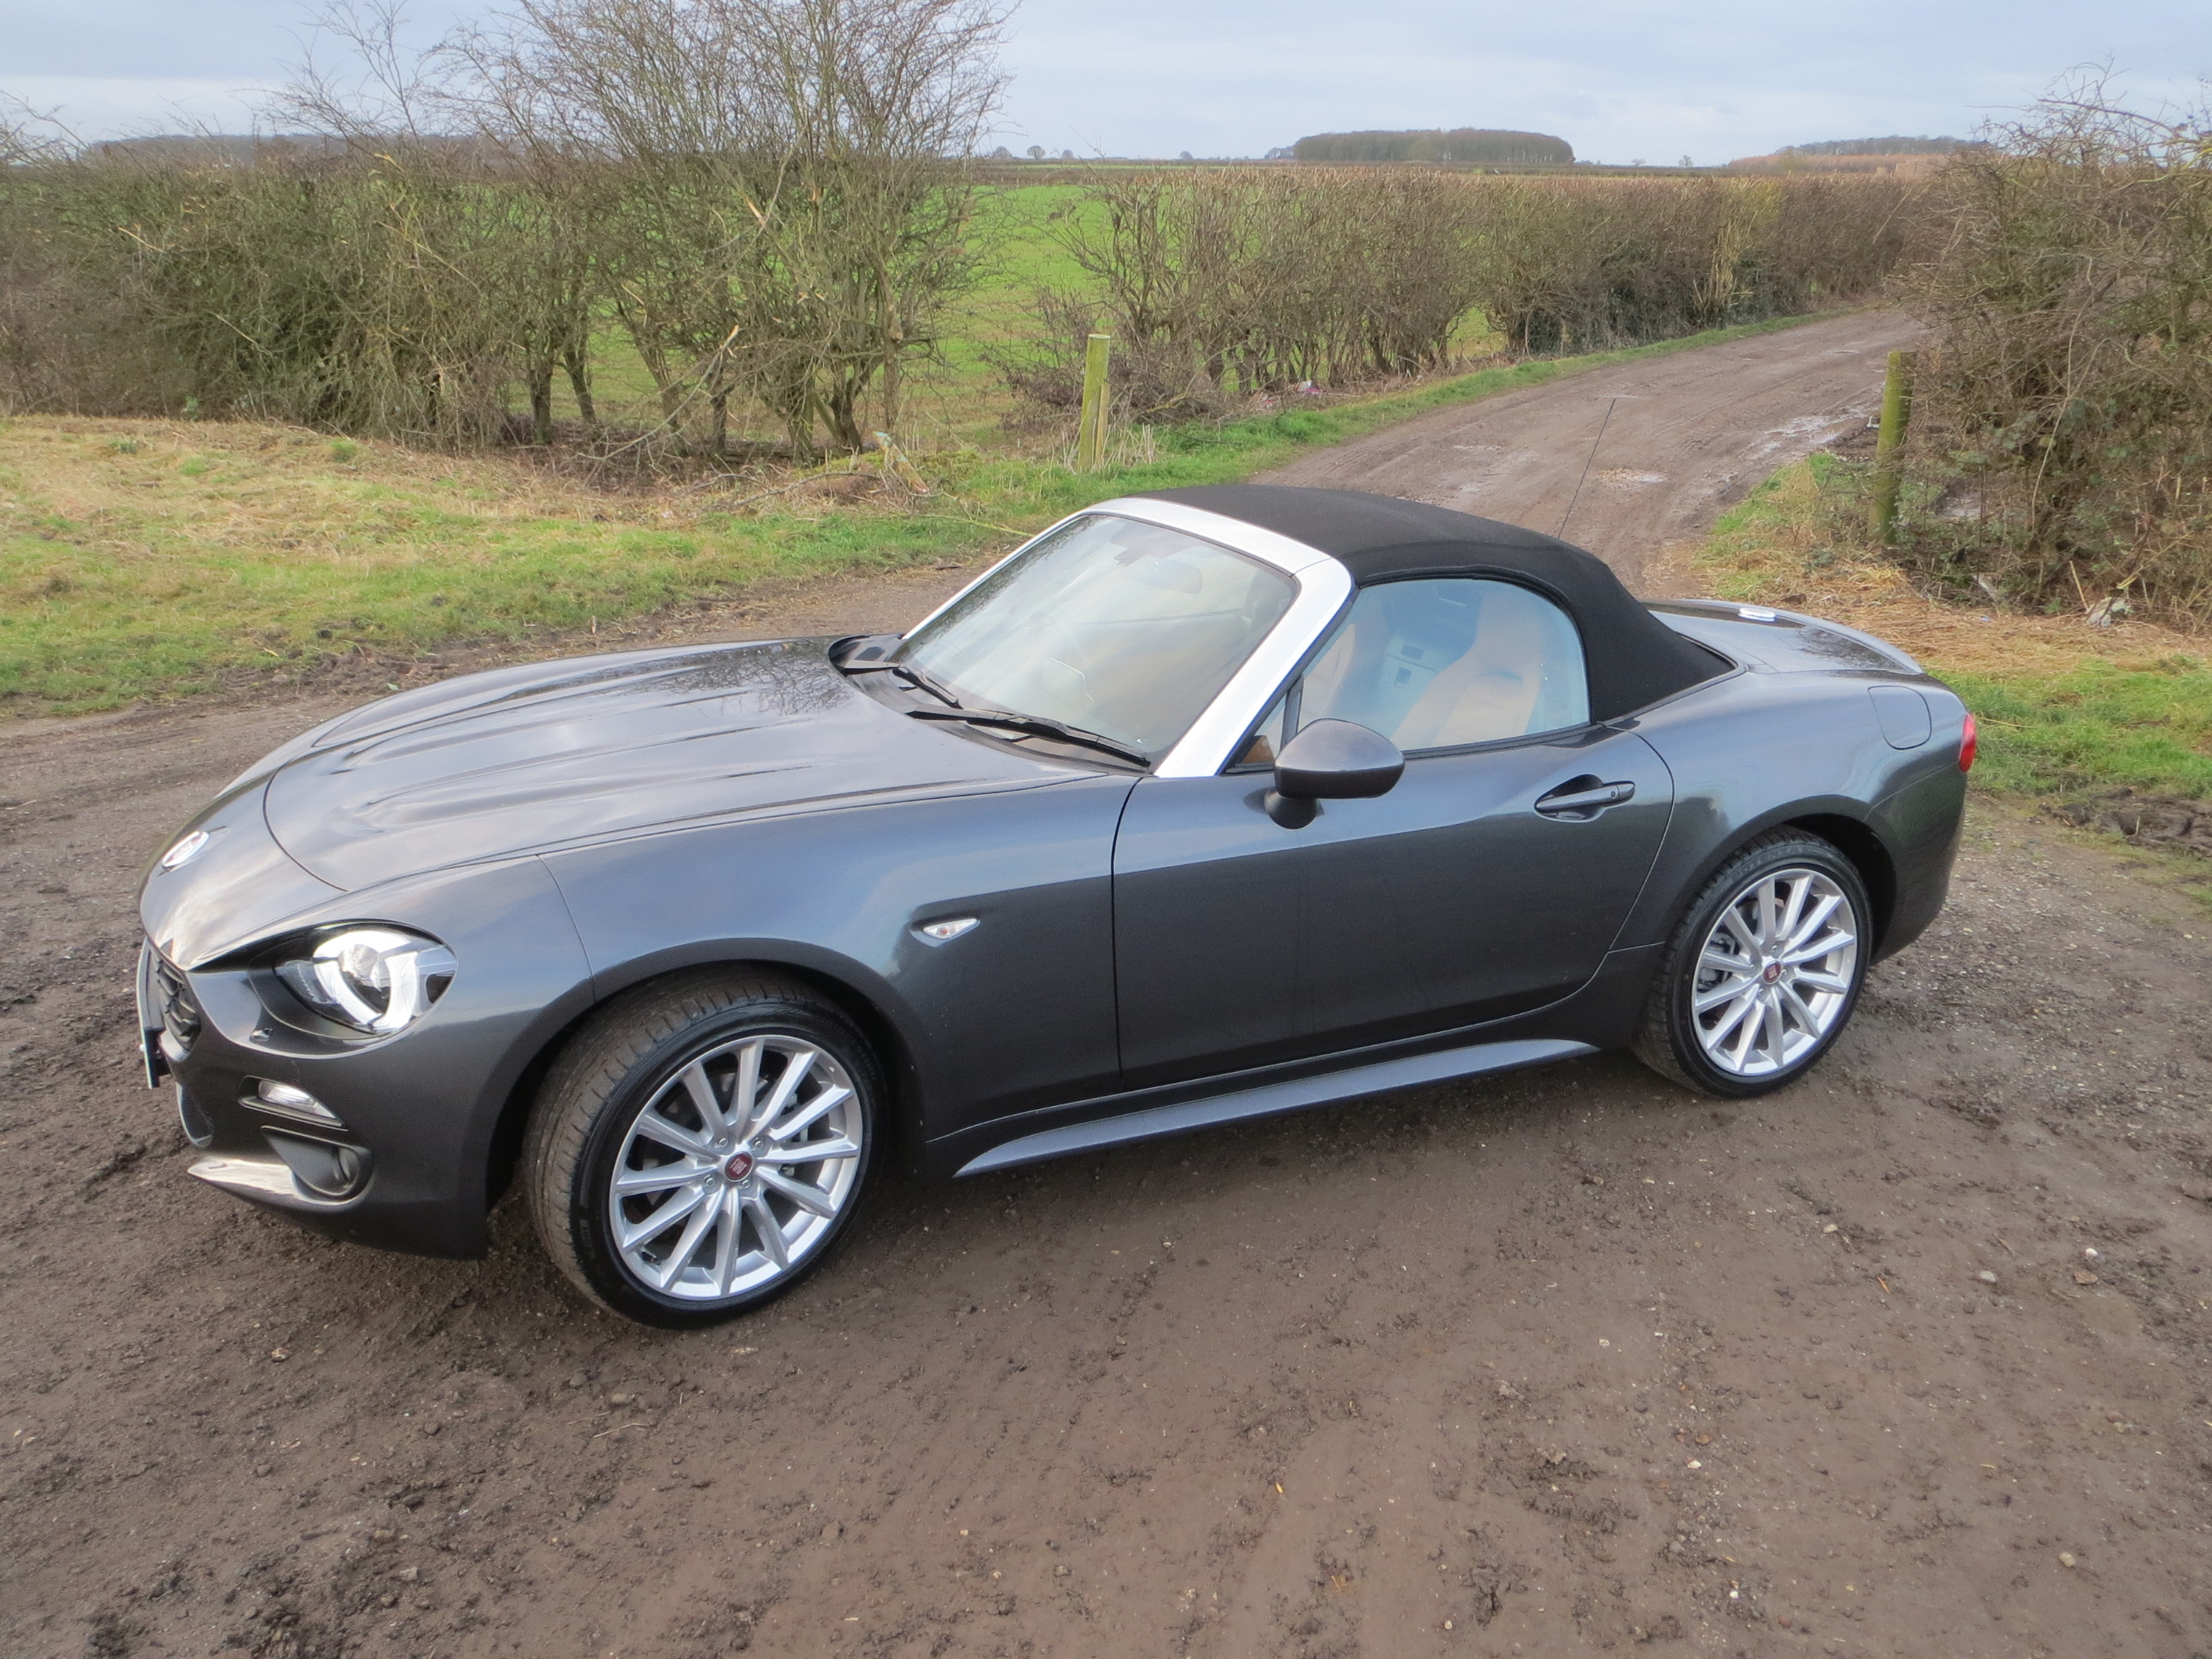 fiat 124 spider 1 4 multiair turbo 140hp road test report. Black Bedroom Furniture Sets. Home Design Ideas